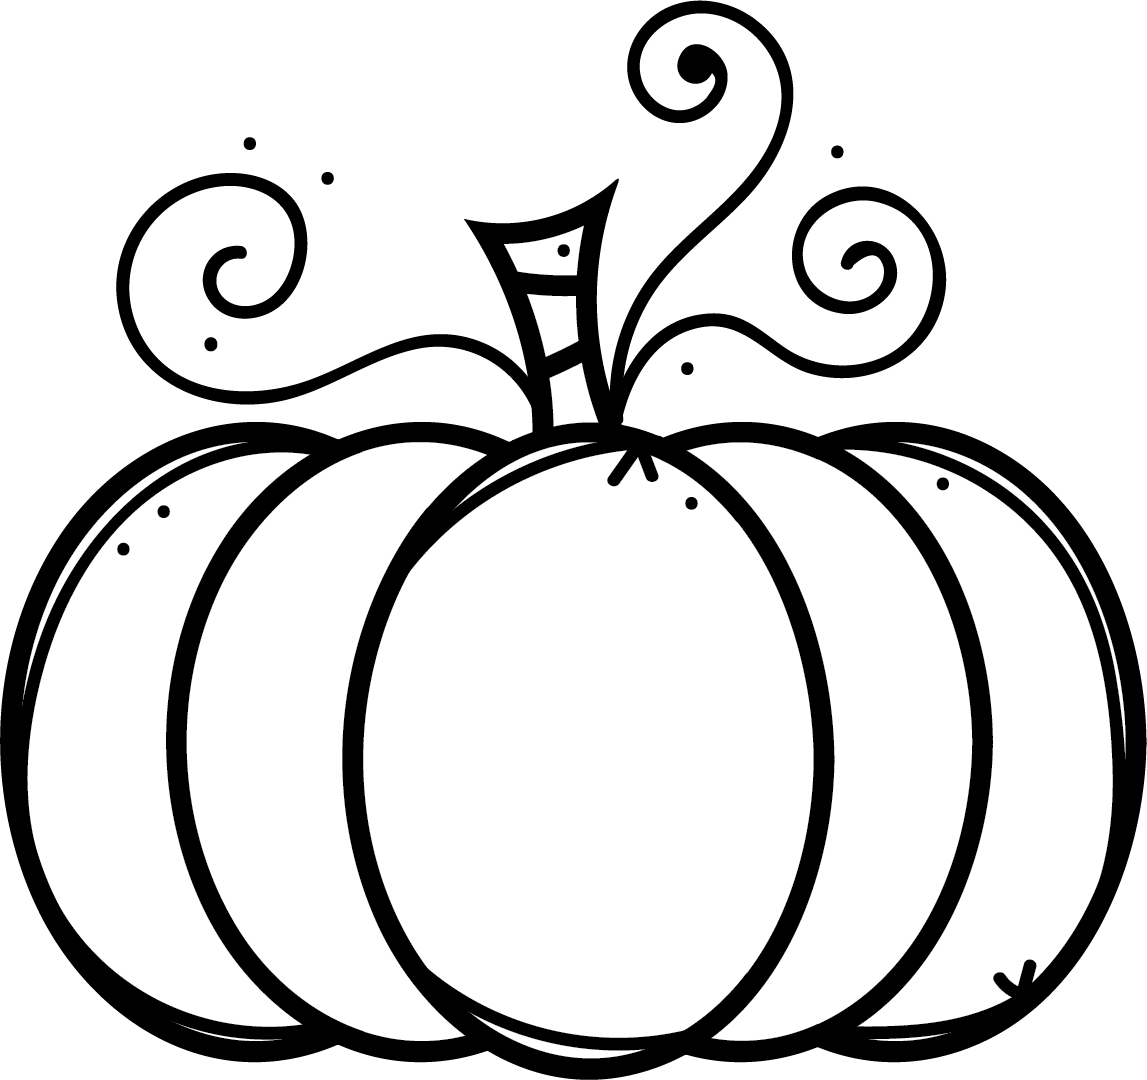 Pin By Tara Holley On Teach In October Clip Art Black And White Coloring Pages